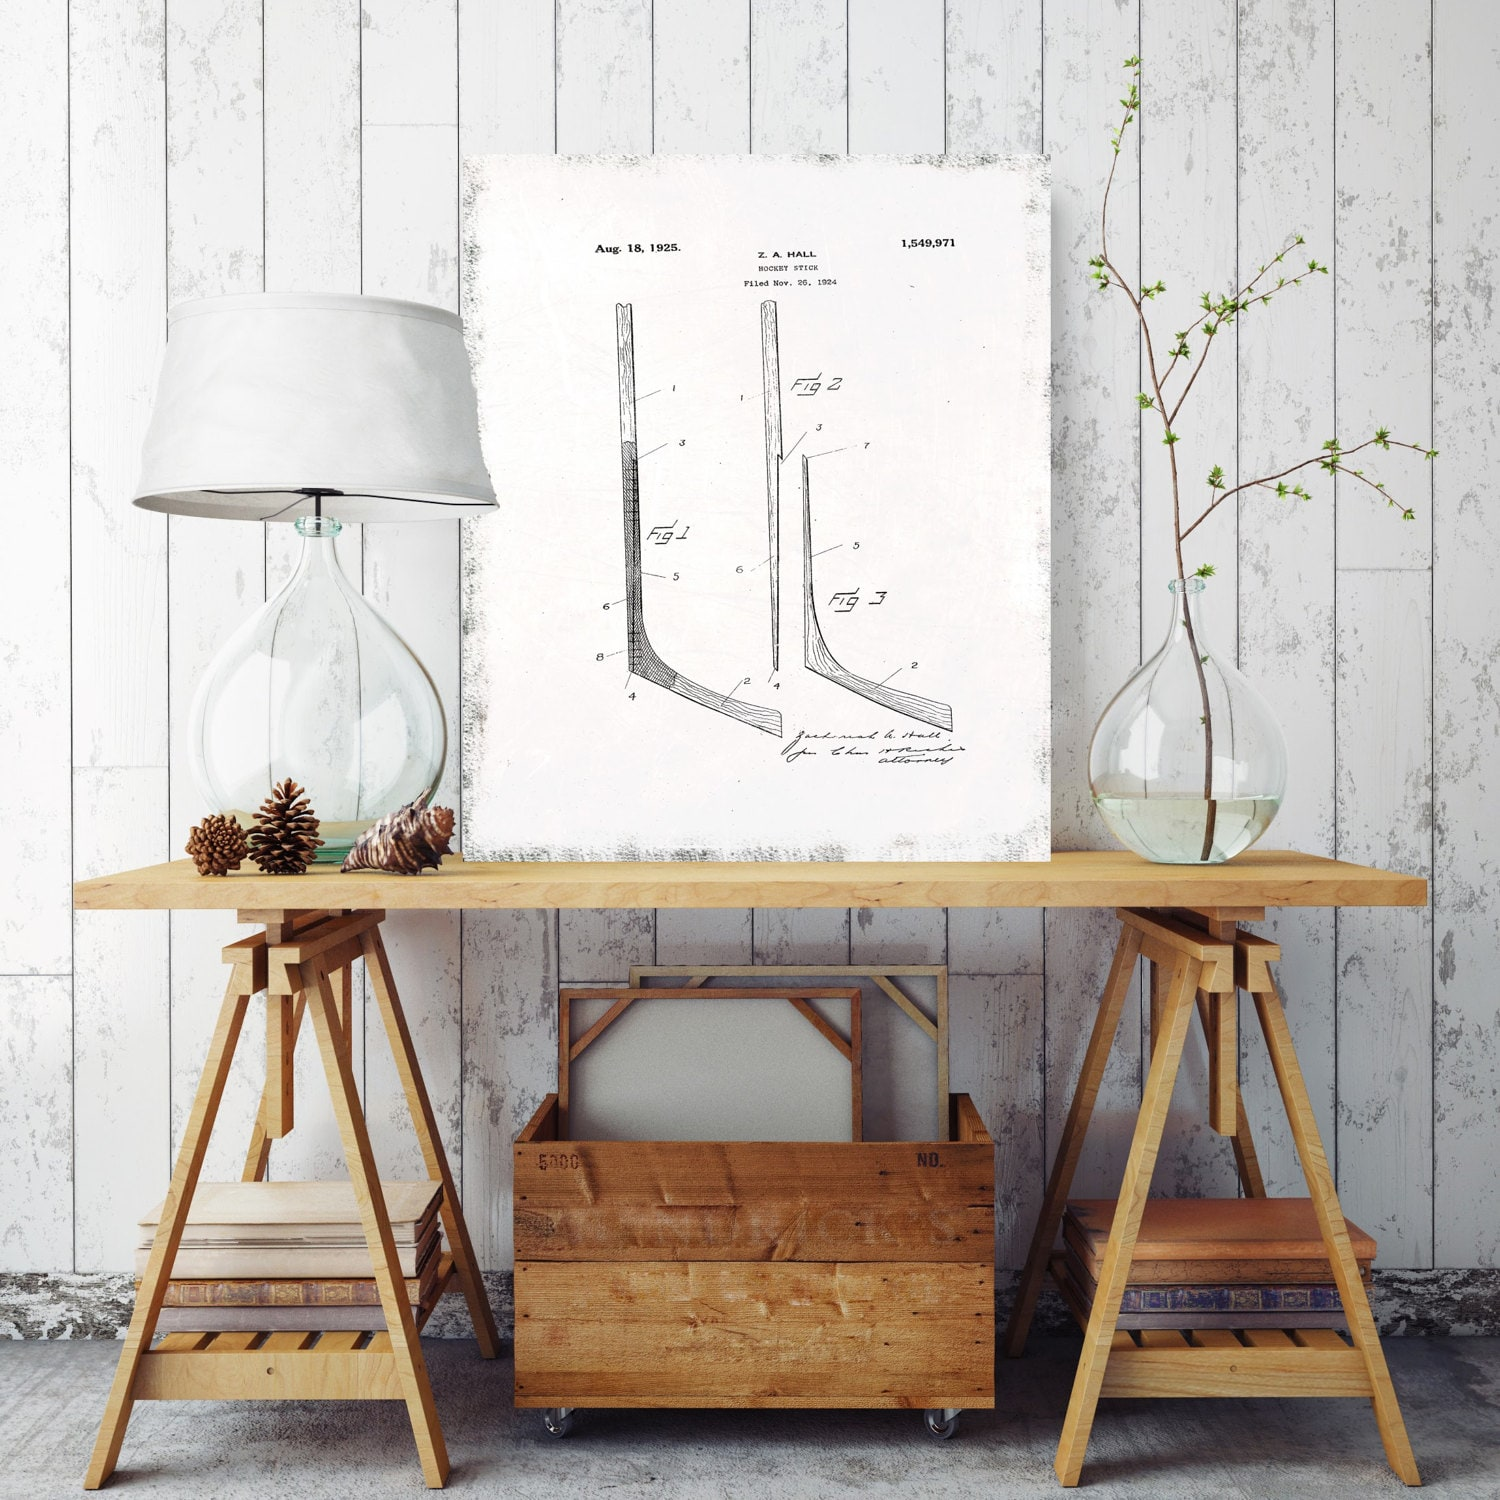 Hockey stick blueprint hockey stick patent print sport patent hockey stick blueprint hockey stick patent print sport patent print printed on canvas vintage wall decor vintage wall decor malvernweather Image collections